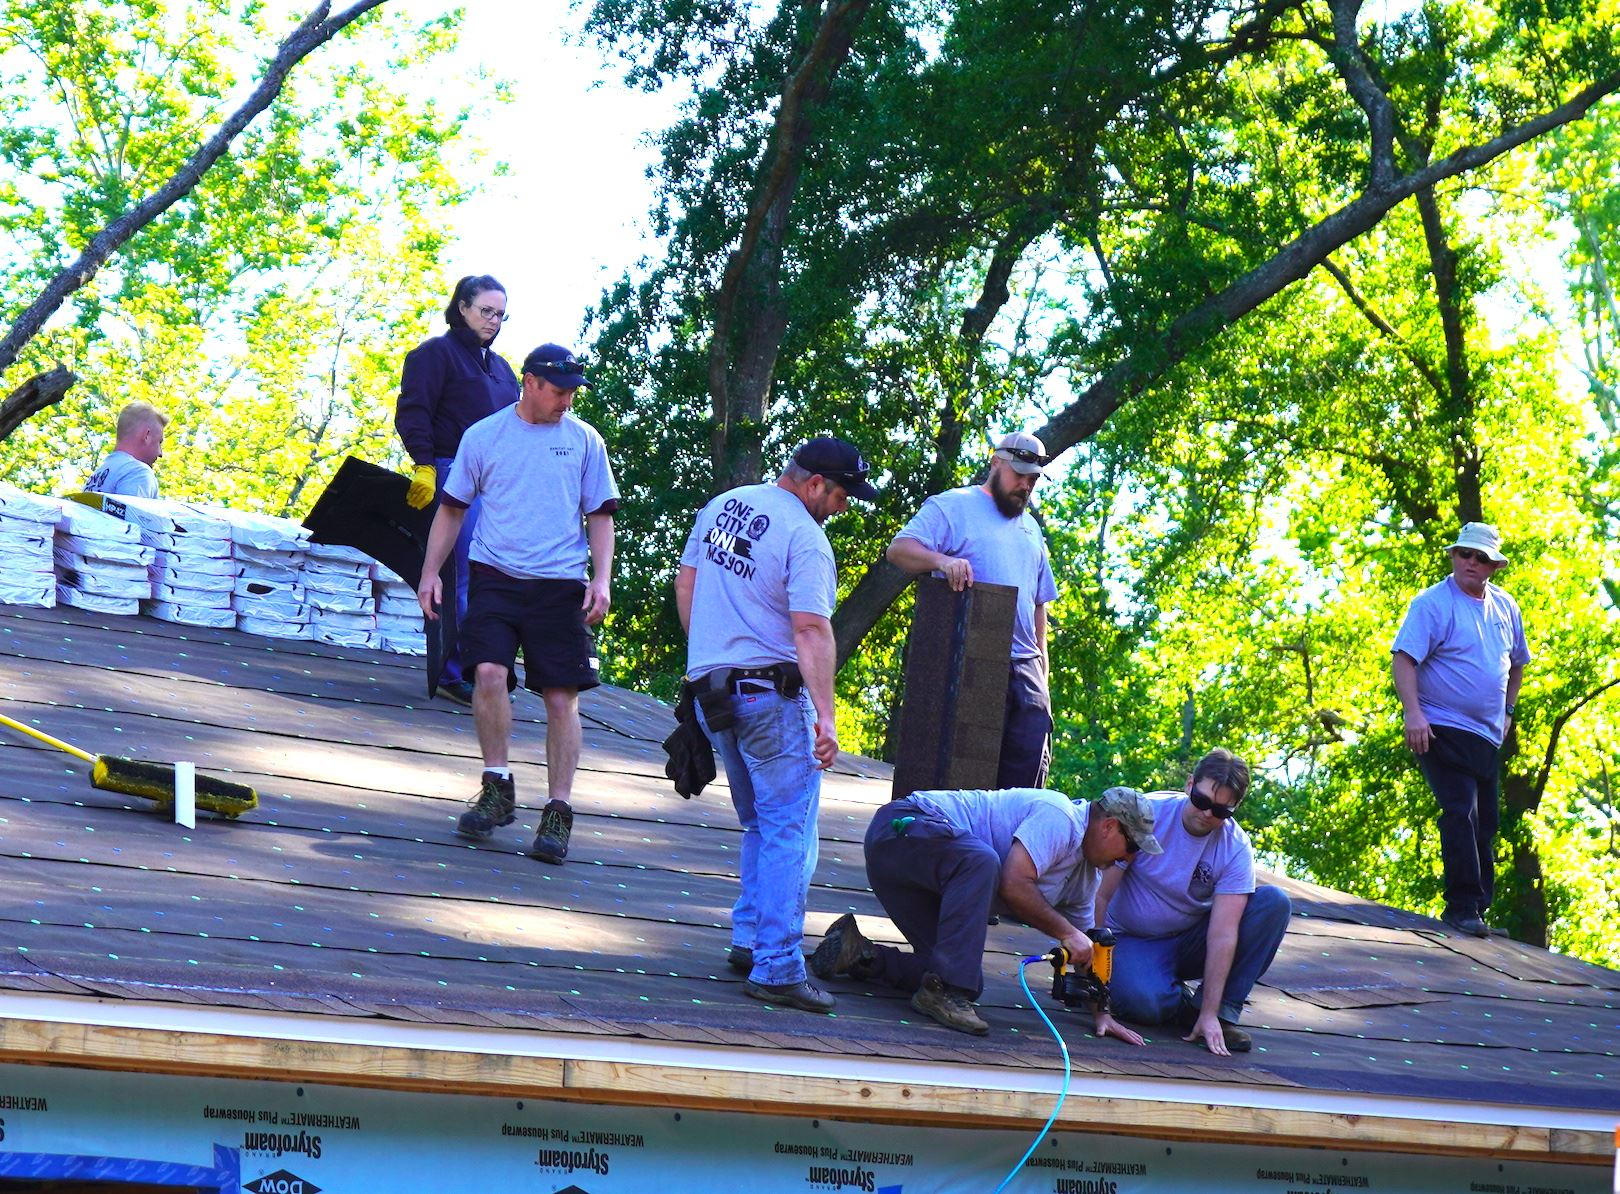 City employee volunteers take to the rooftop to shingle a Habitat for Humanity house.